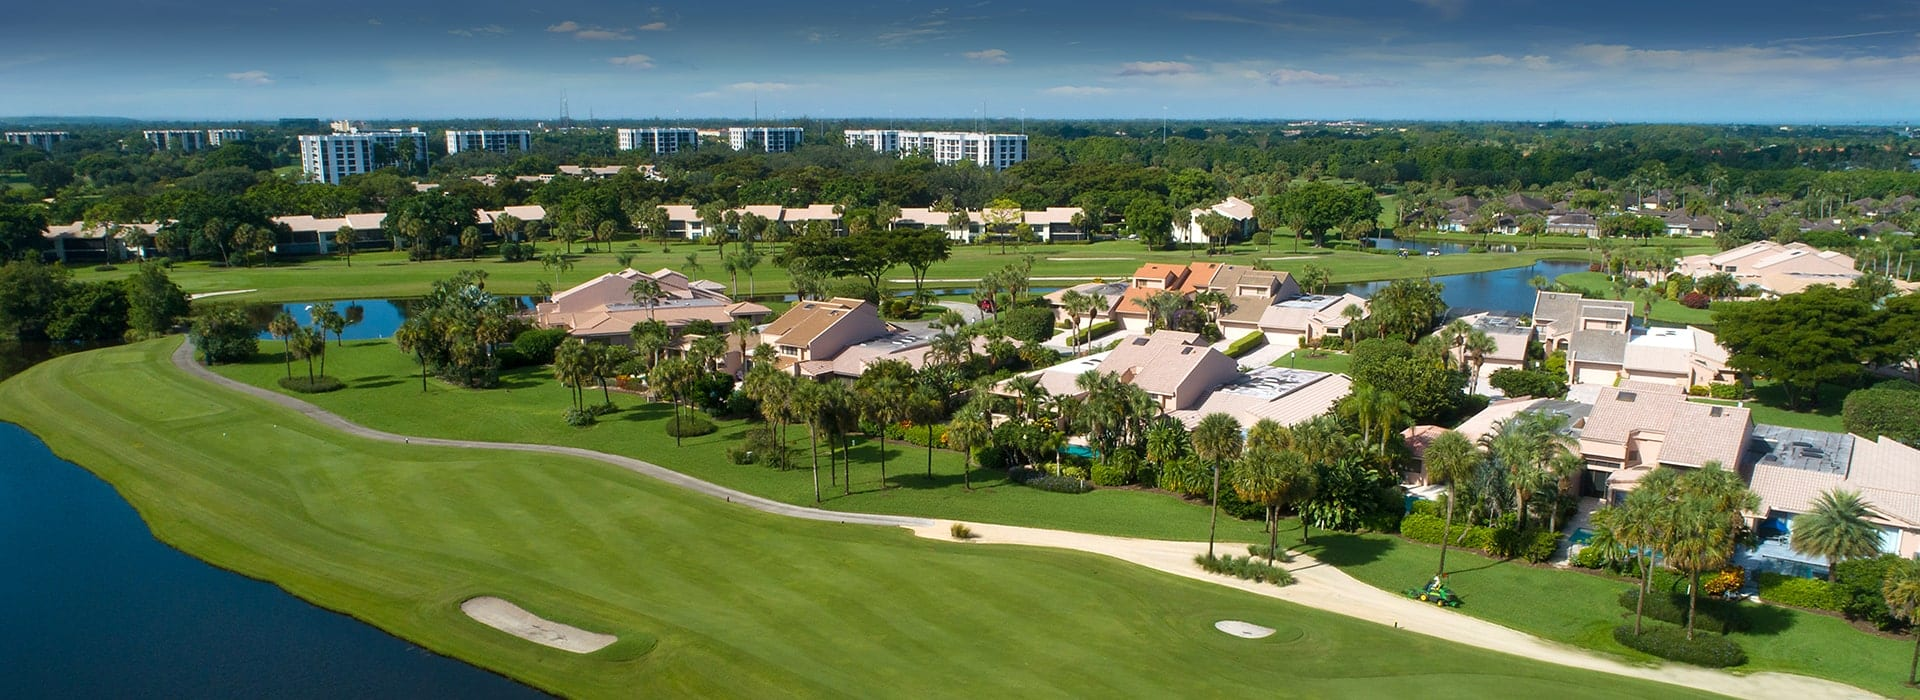 Wind Key townhomes at Boca West